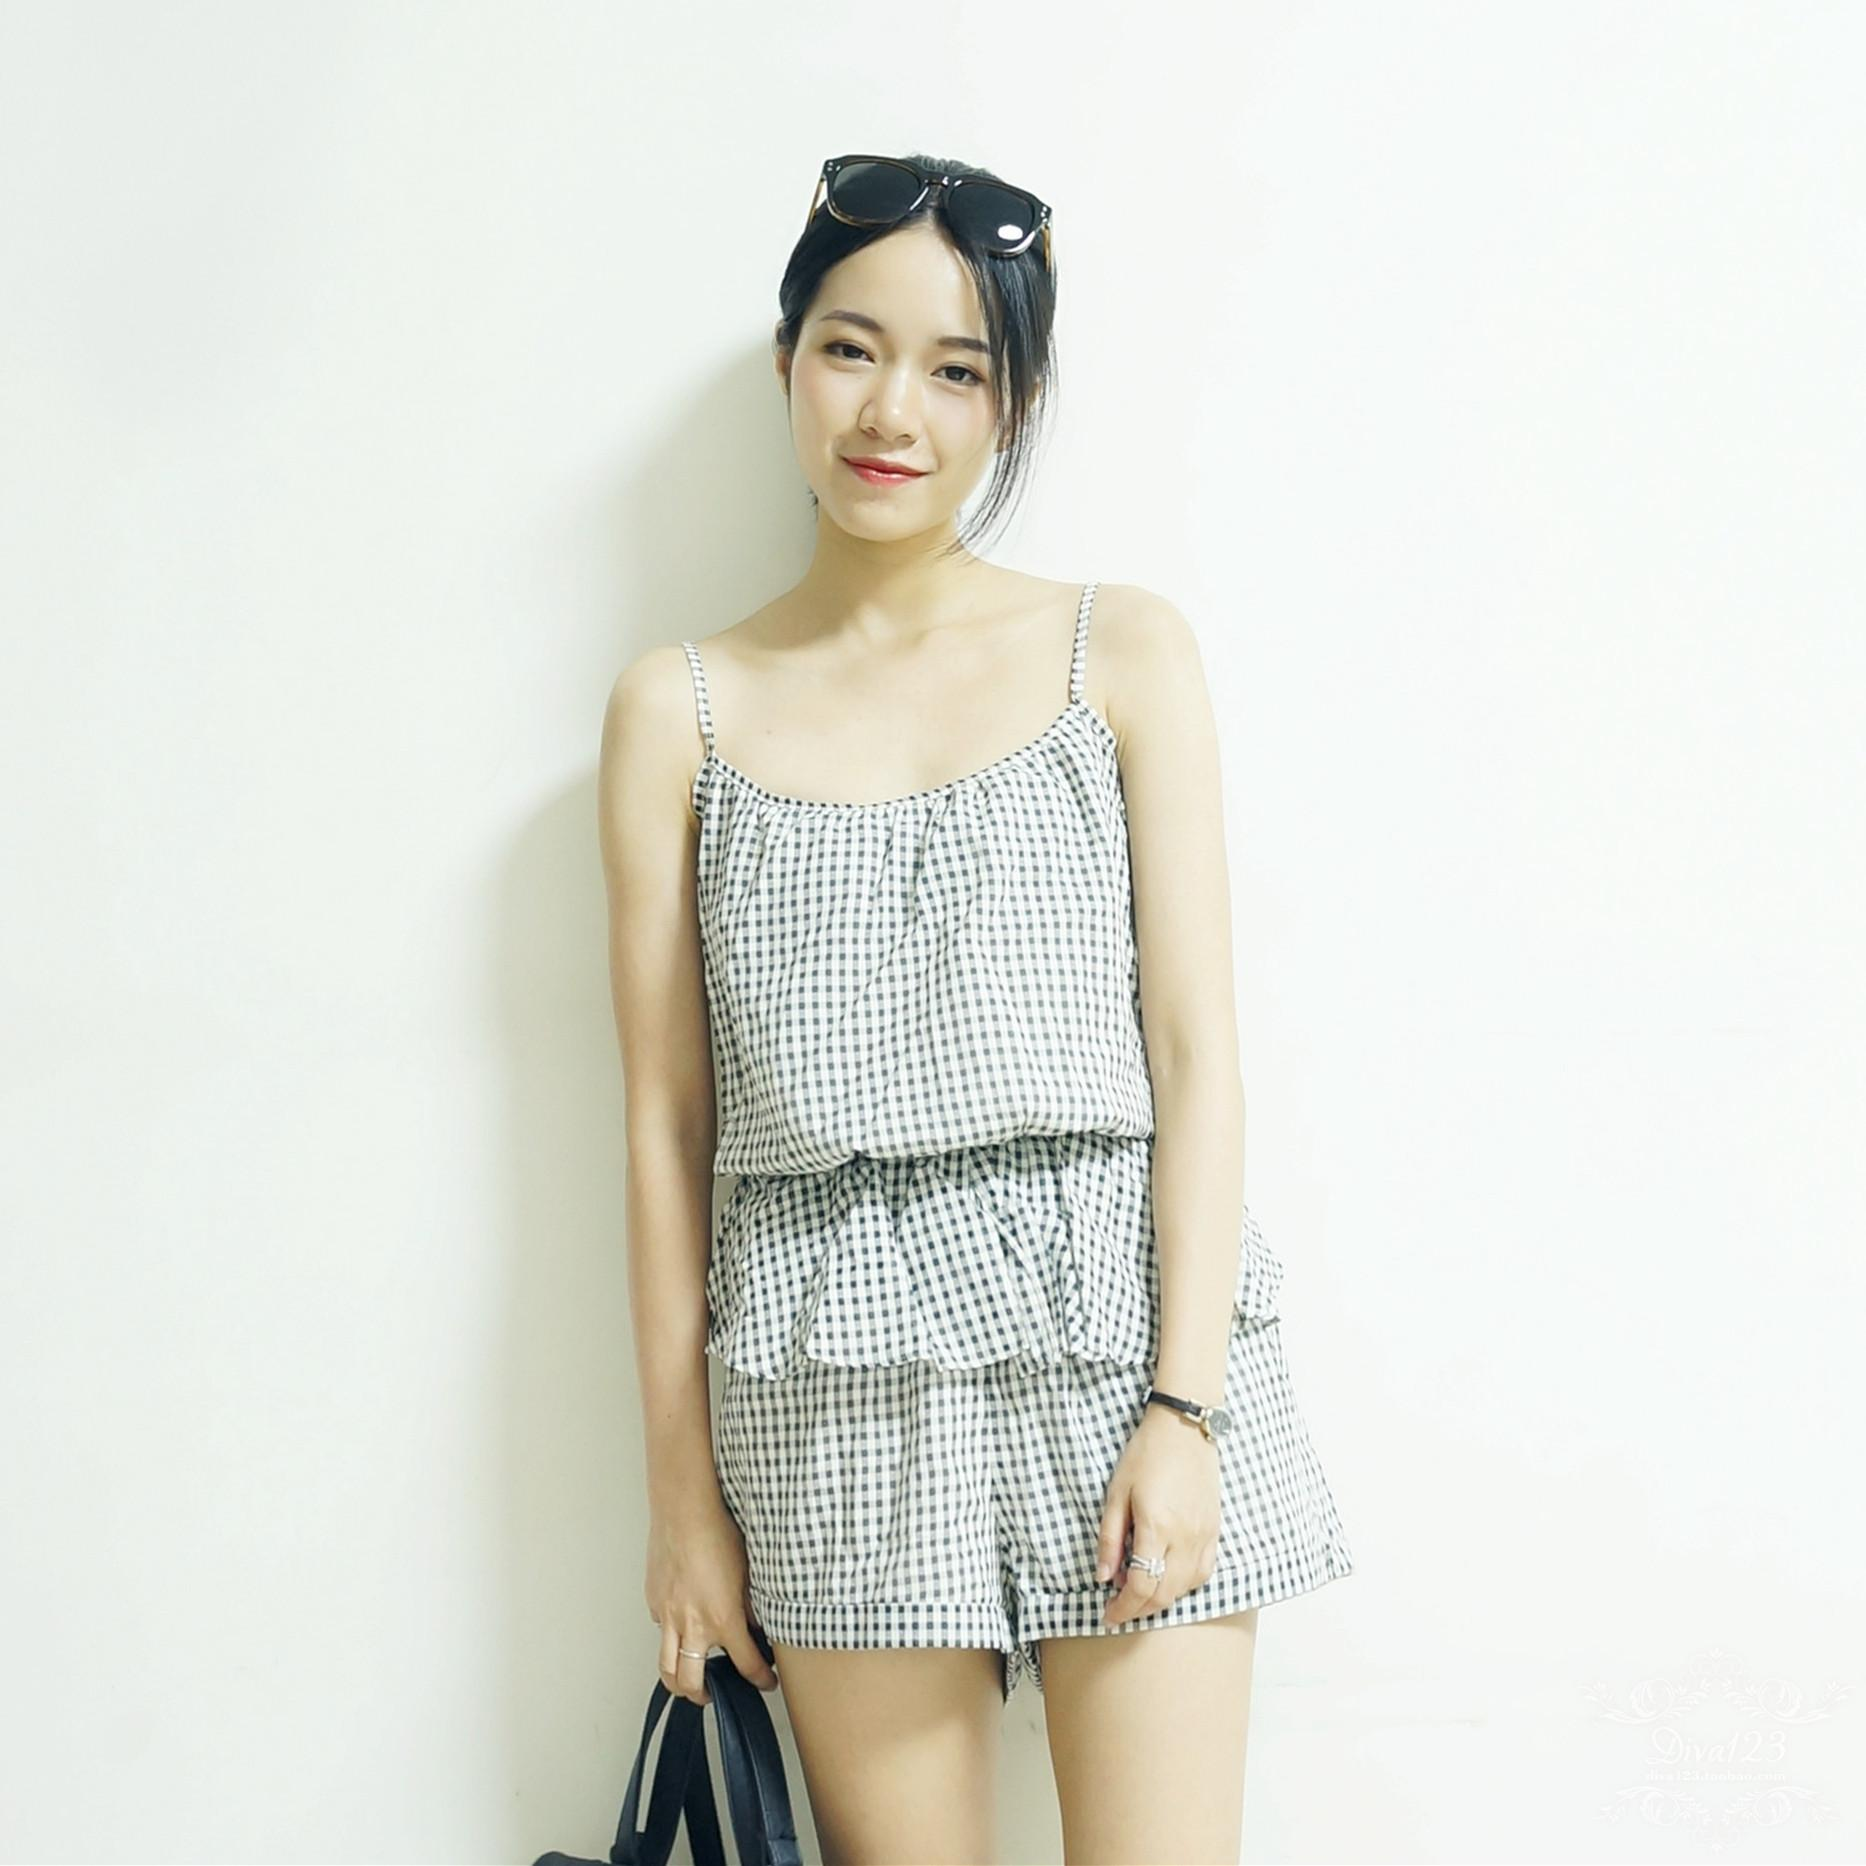 Japanese single miia spring and summer small fresh Plaid lace suspender Jumpsuit vest Jumpsuit shorts Jumpsuit clearance